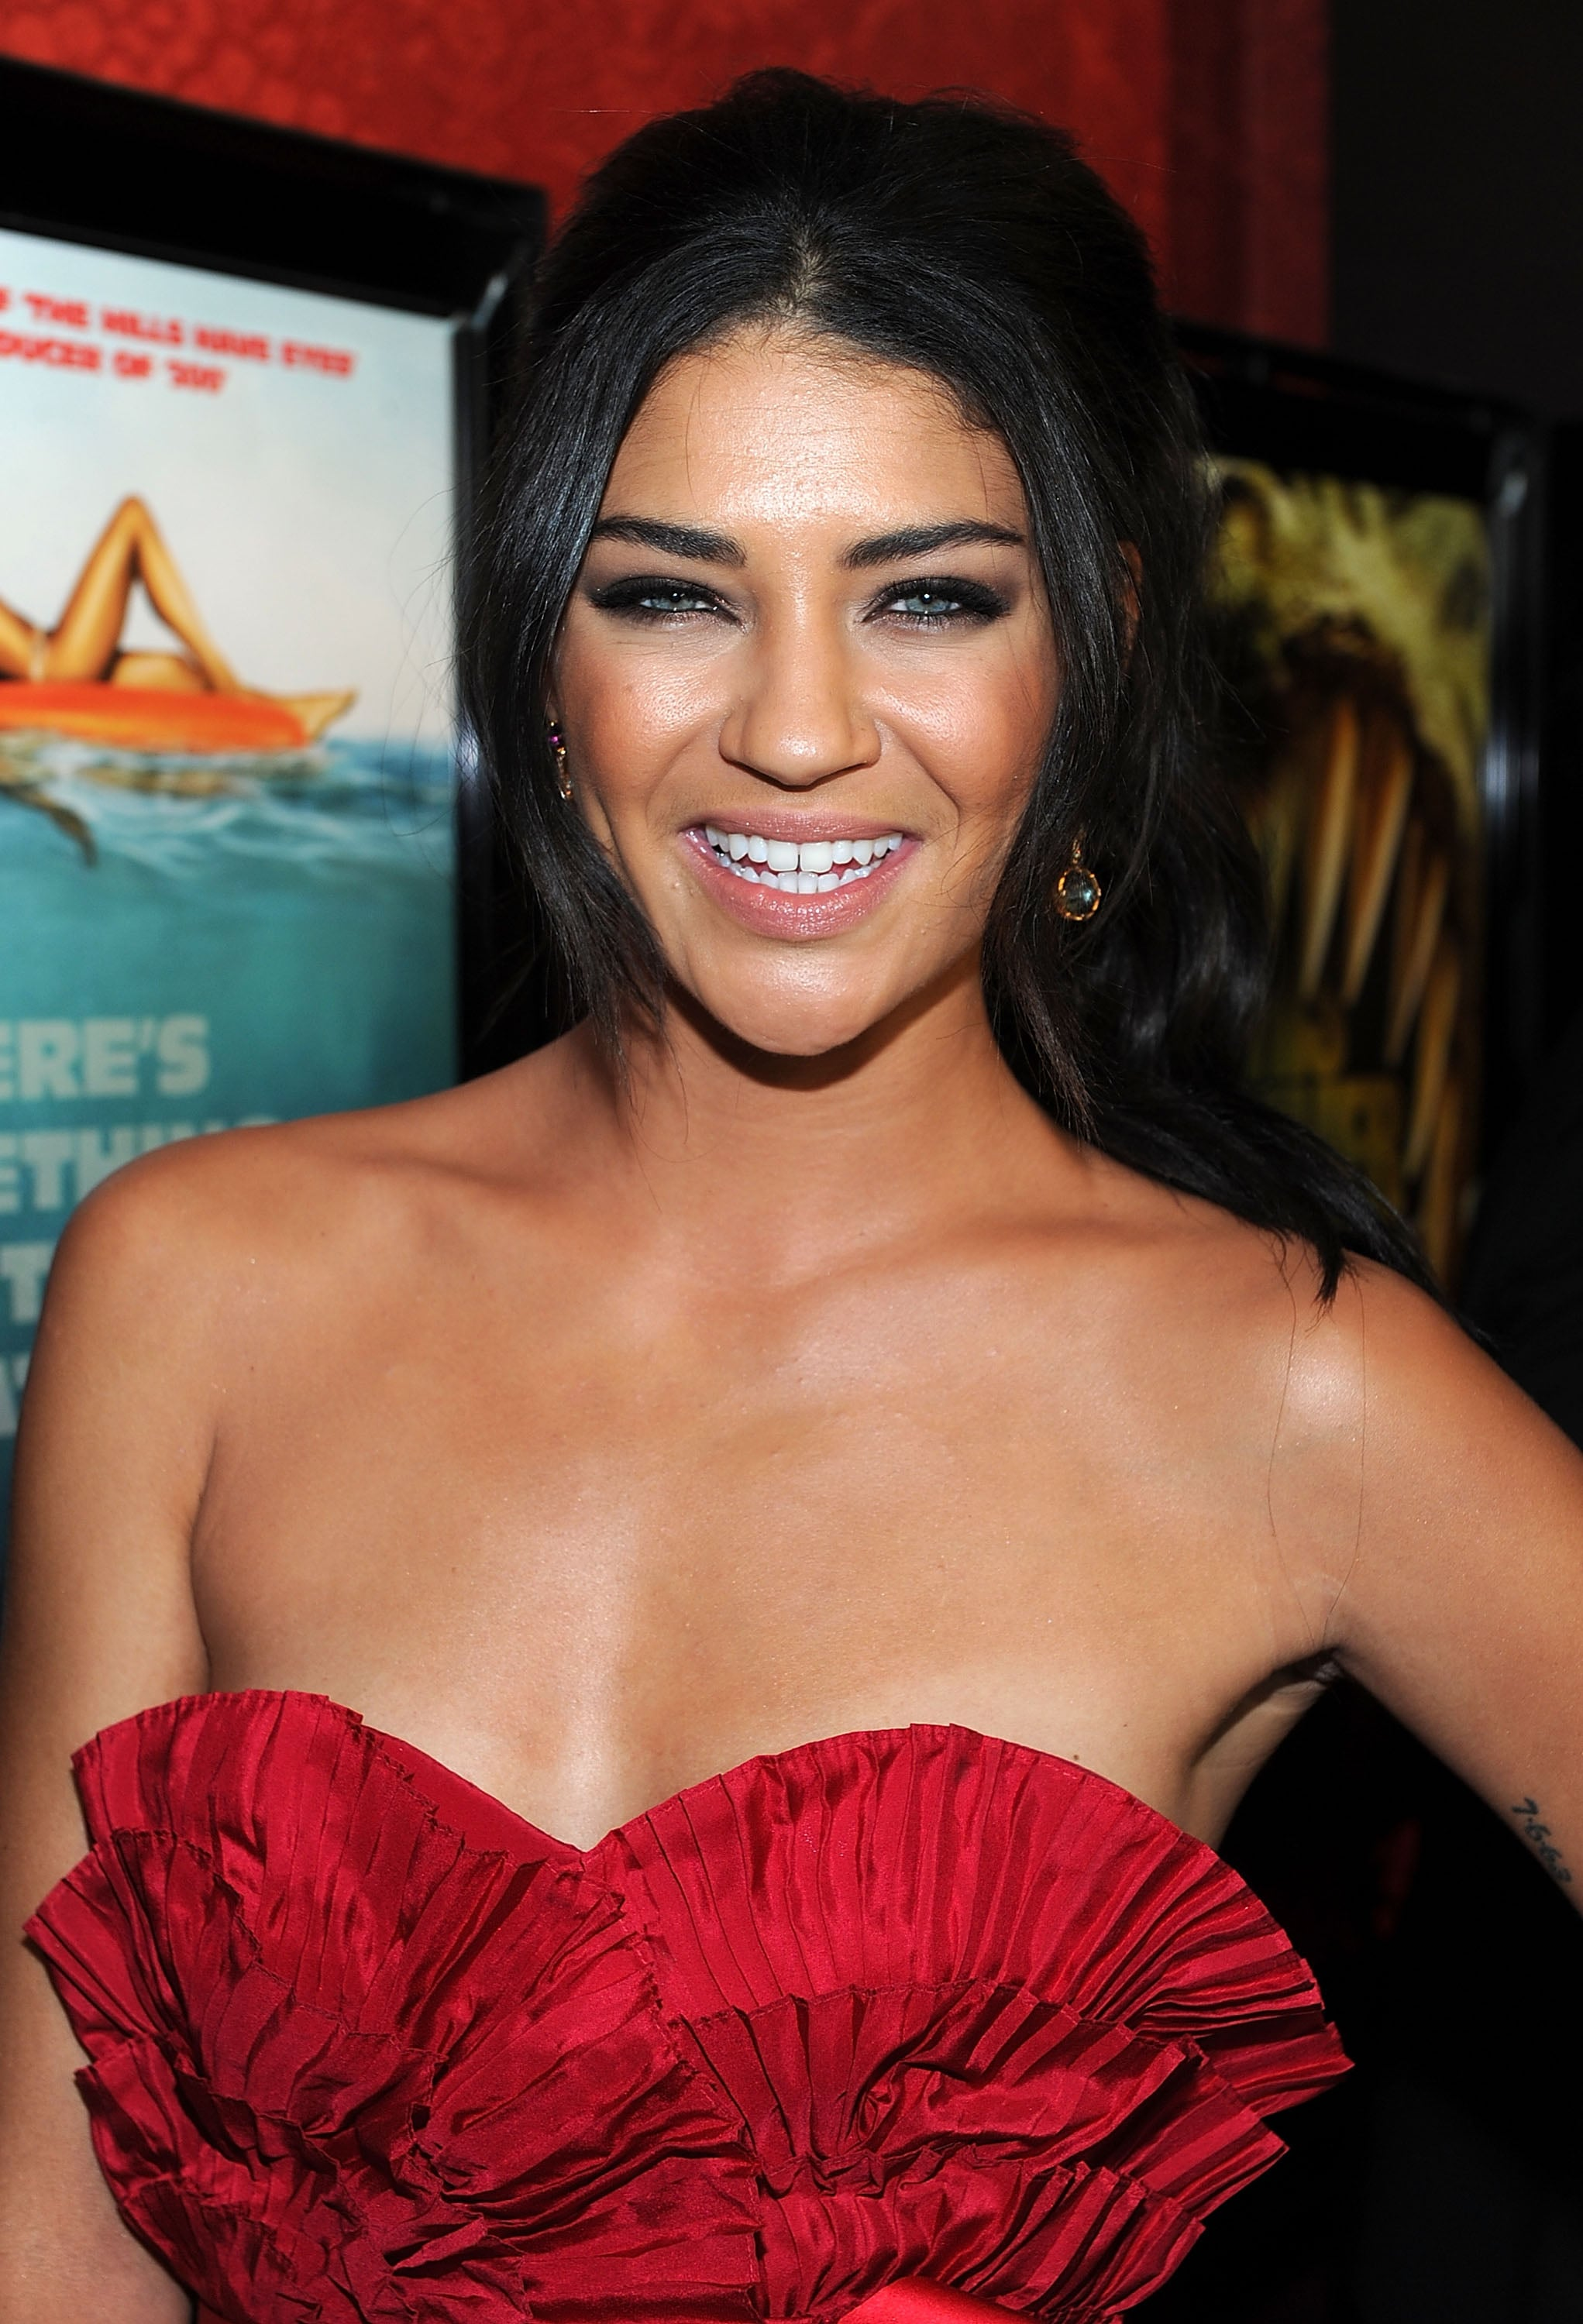 Jessica Szohr nudes (63 fotos), hacked Paparazzi, Twitter, see through 2019